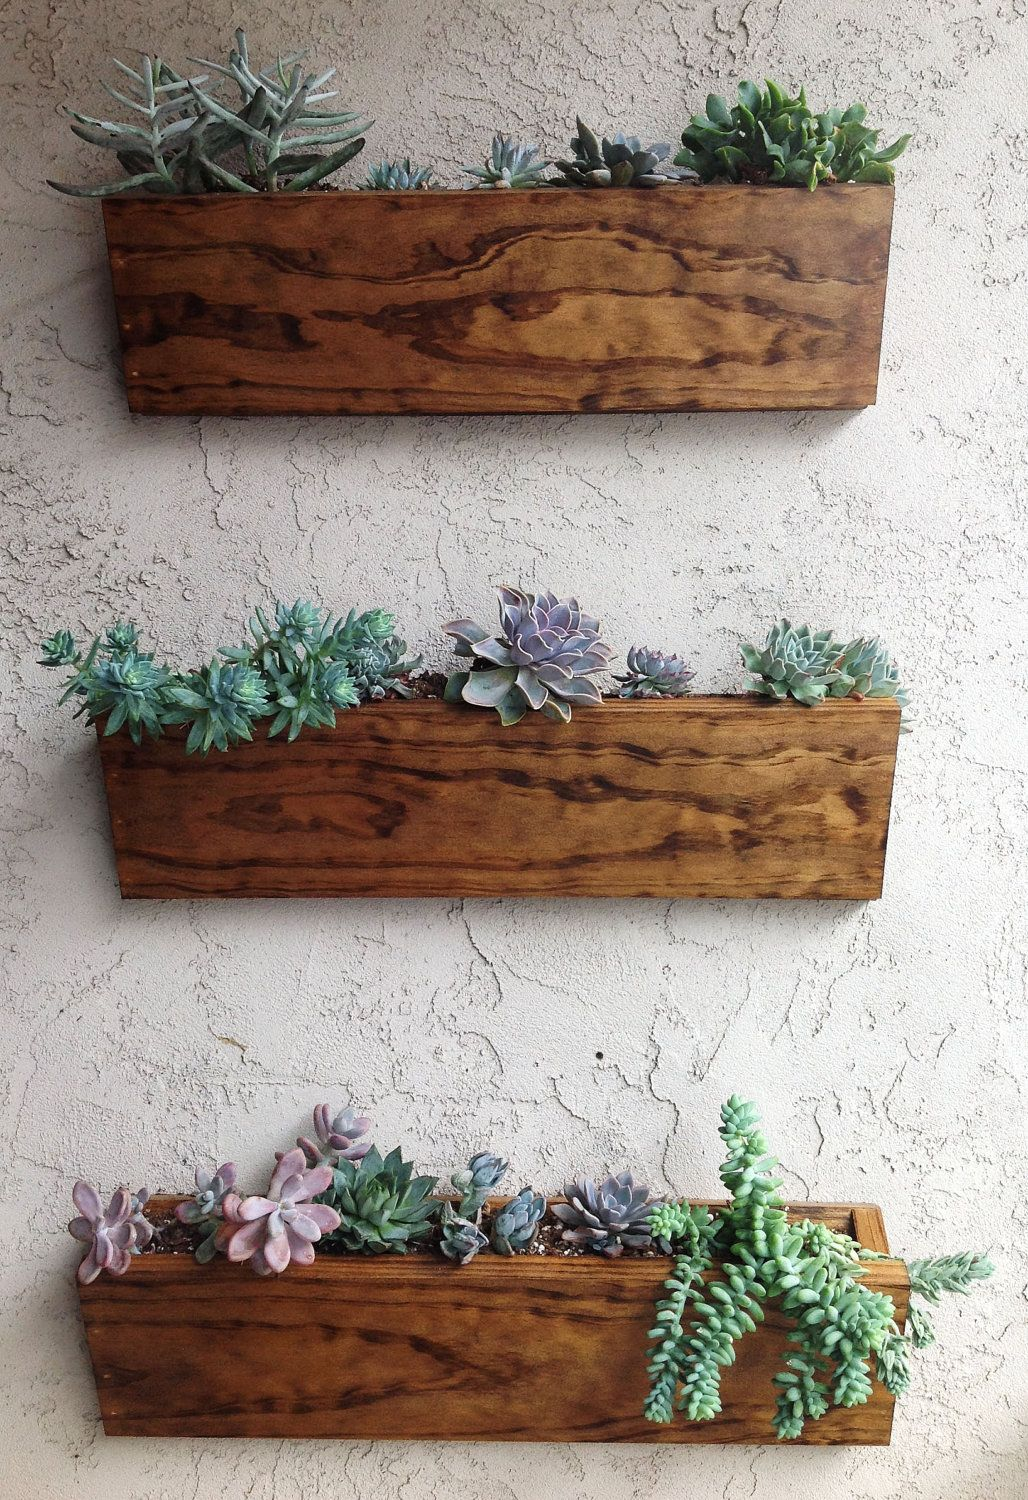 Hanging Planter Box Via Etsy